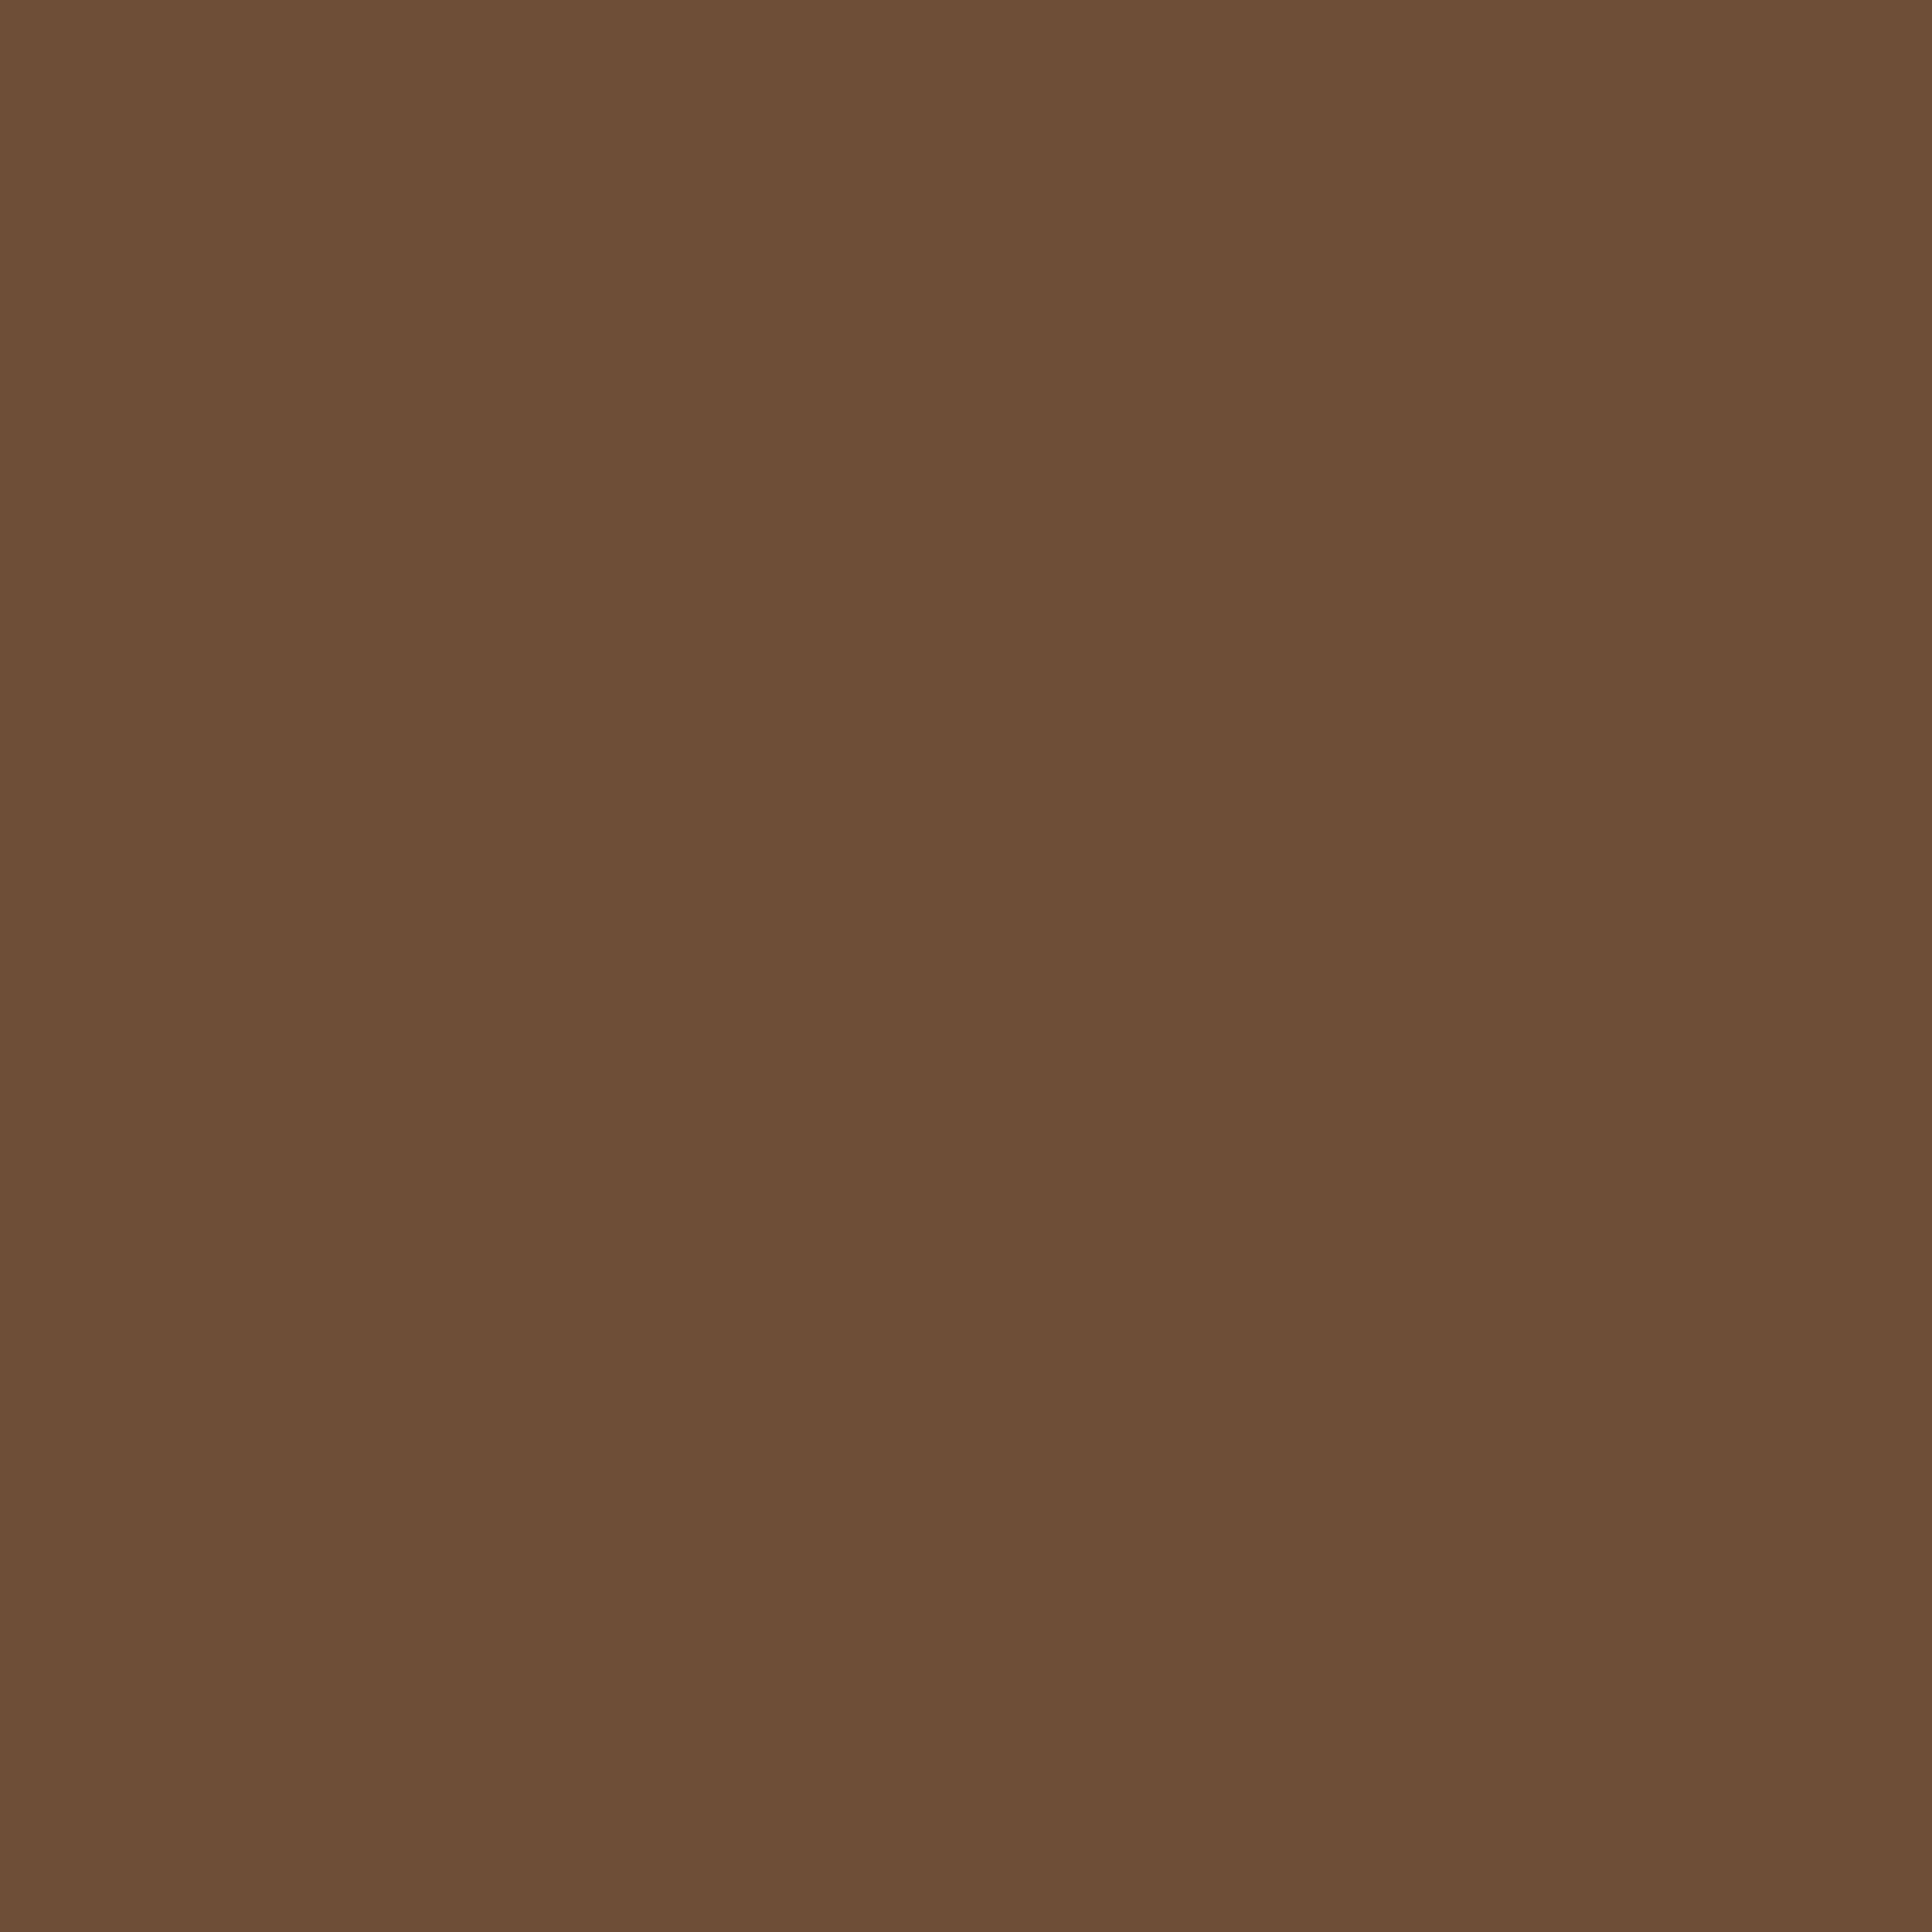 3600x3600 Tuscan Brown Solid Color Background